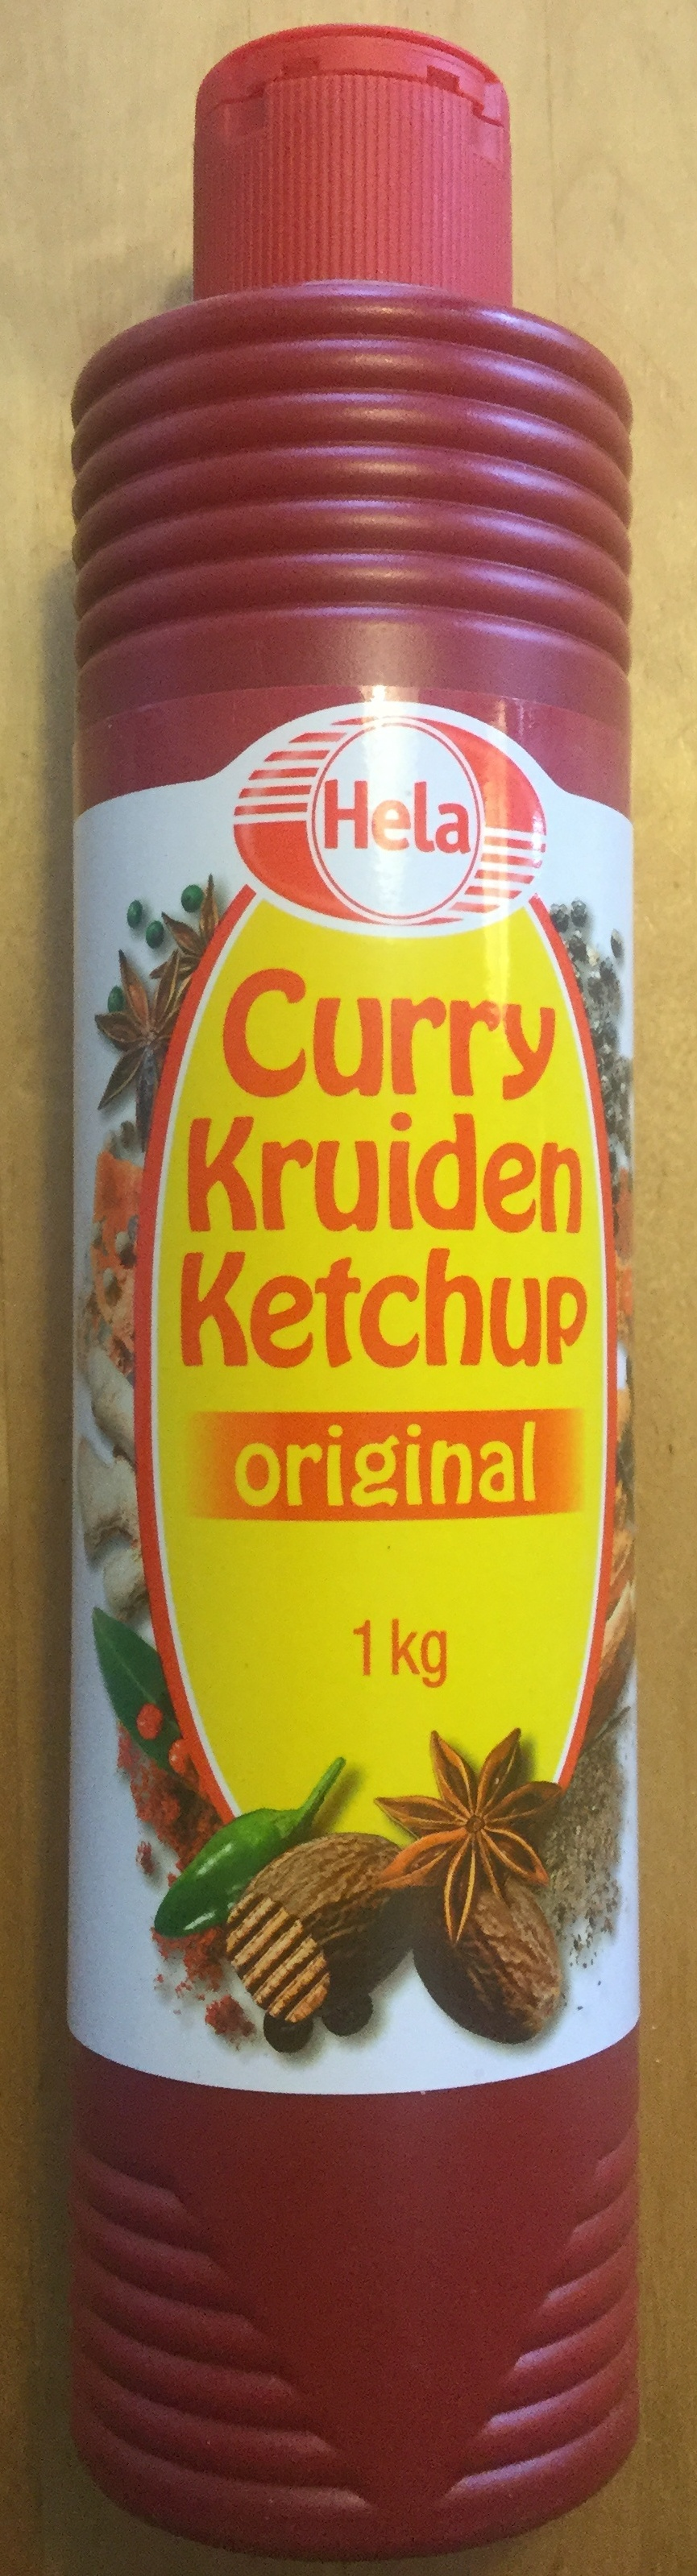 Curry kruiden ketchup original - Product